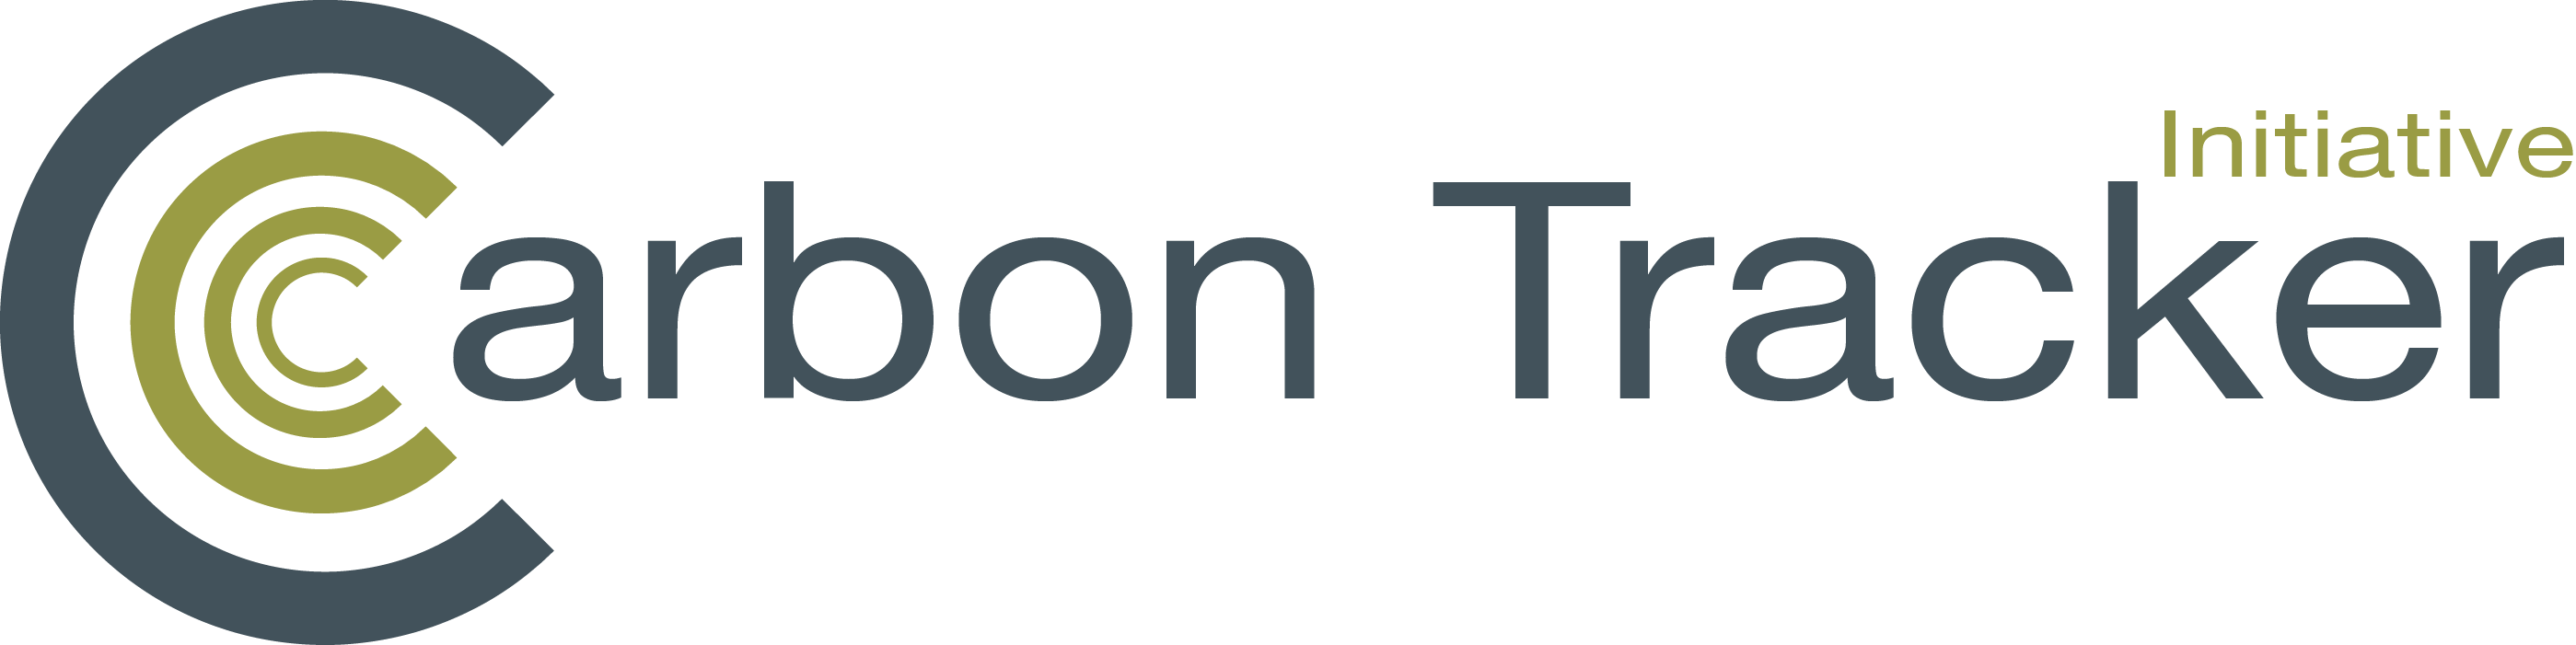 Carbon Tracker Initiative - company logo